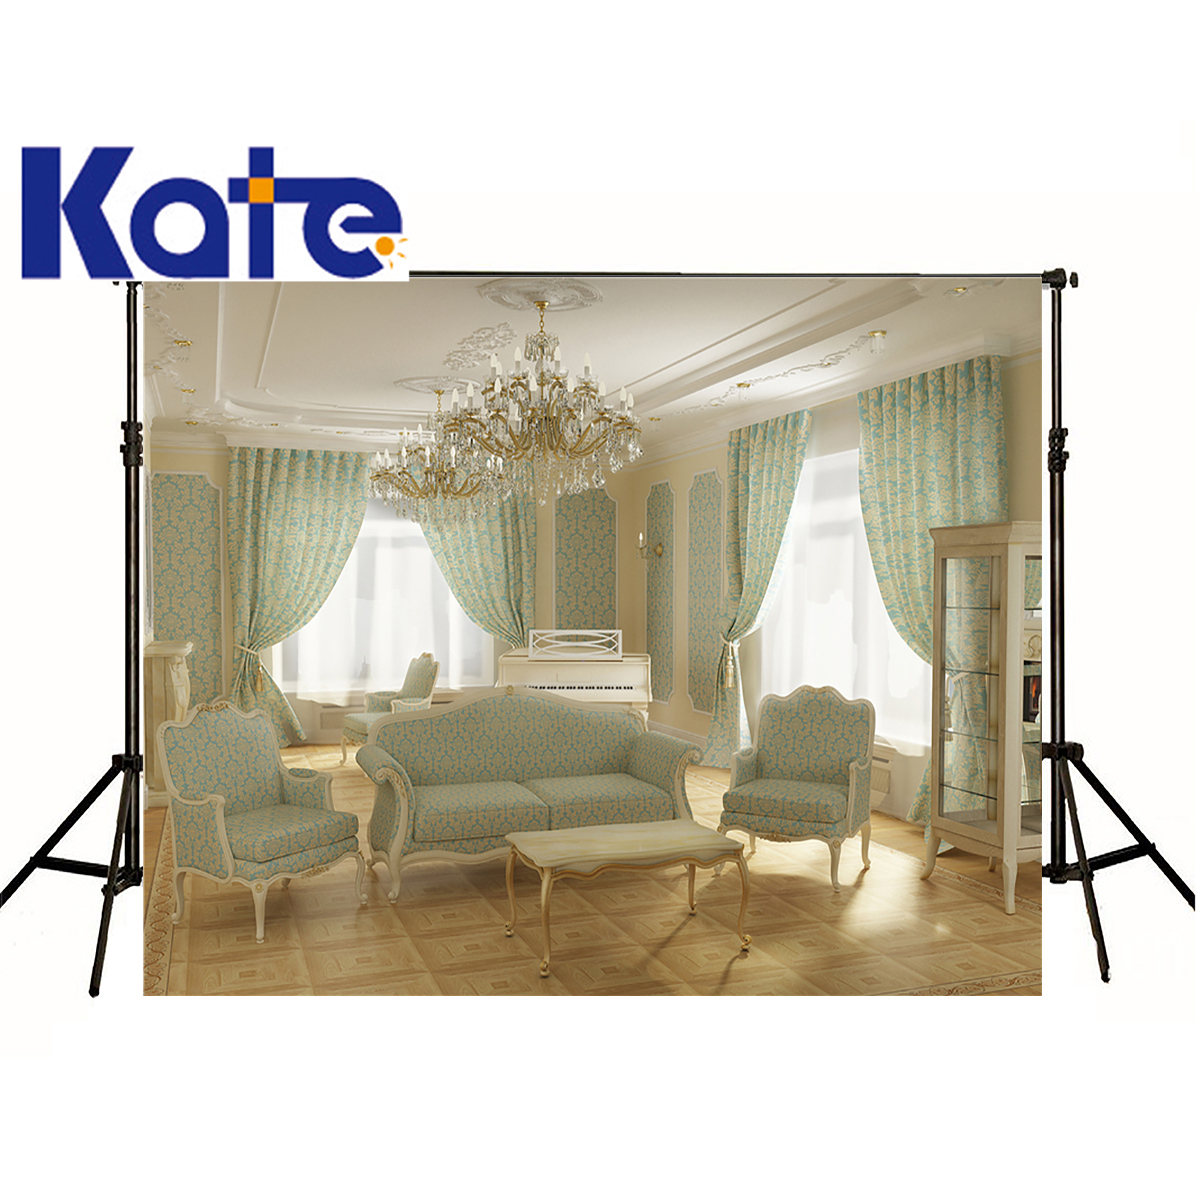 kate Photographic background Indoor living room piano room chair chandelier props Can be washedbackdrops boy wedding 8 x 8 ft private villa living room chair retail